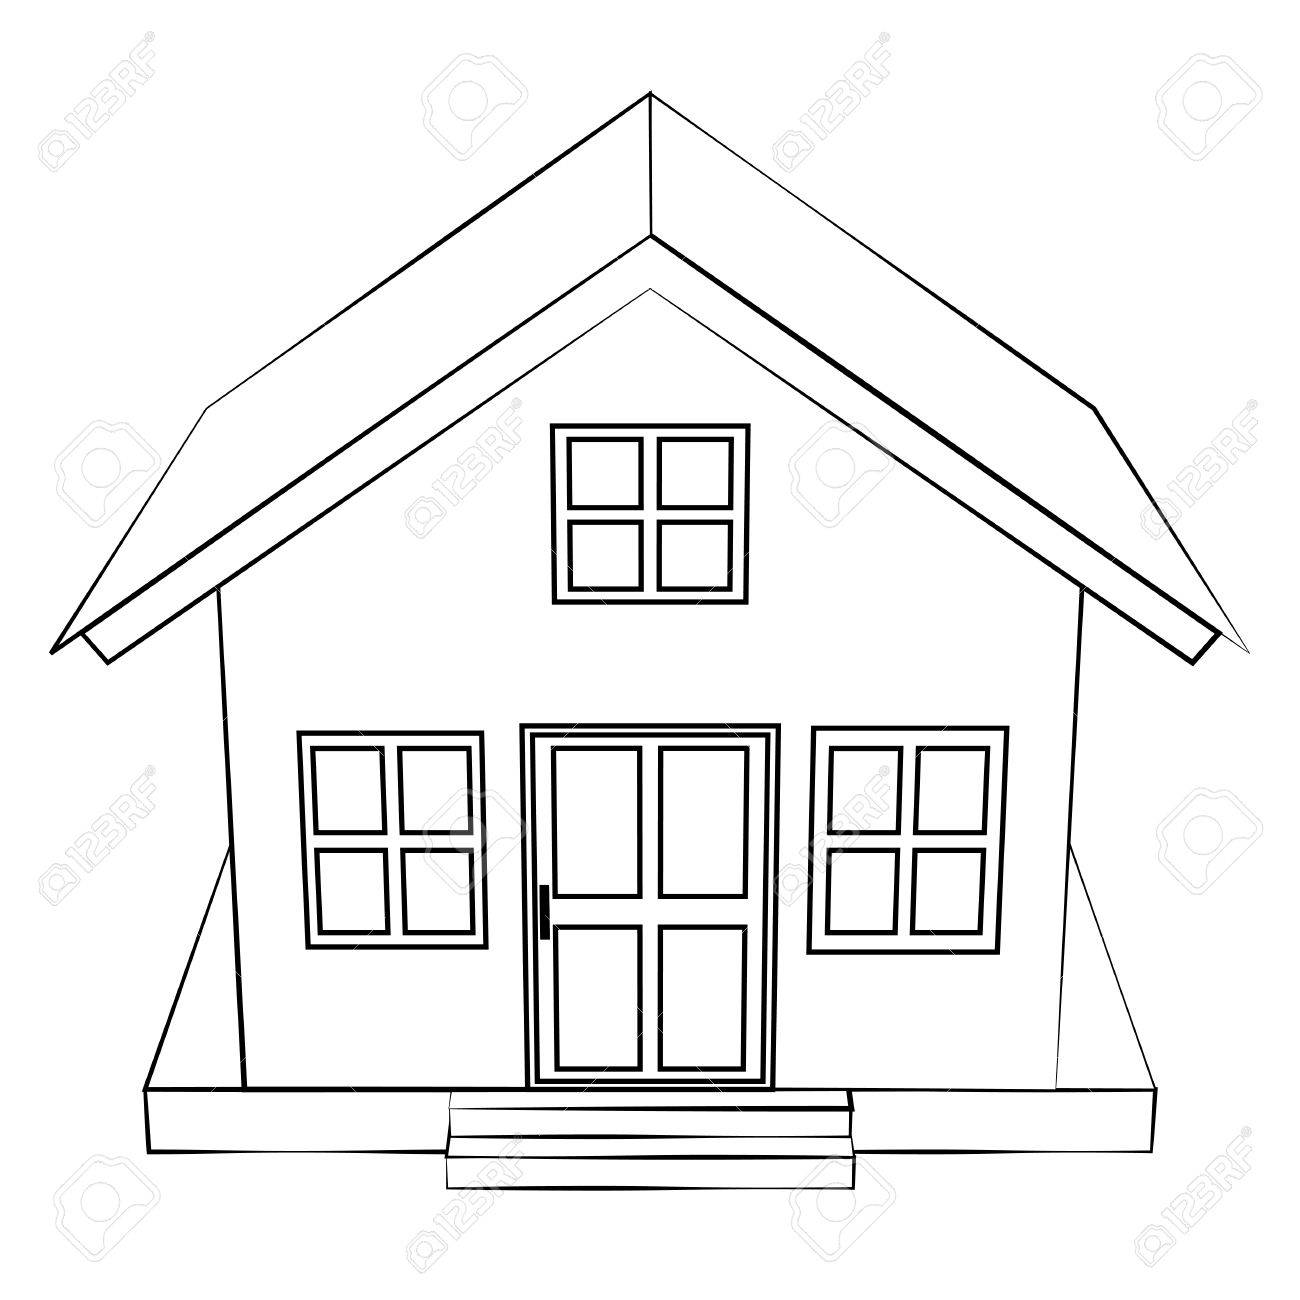 House outline picture - Black Outline Vector House On White Background Stock Vector 25305028